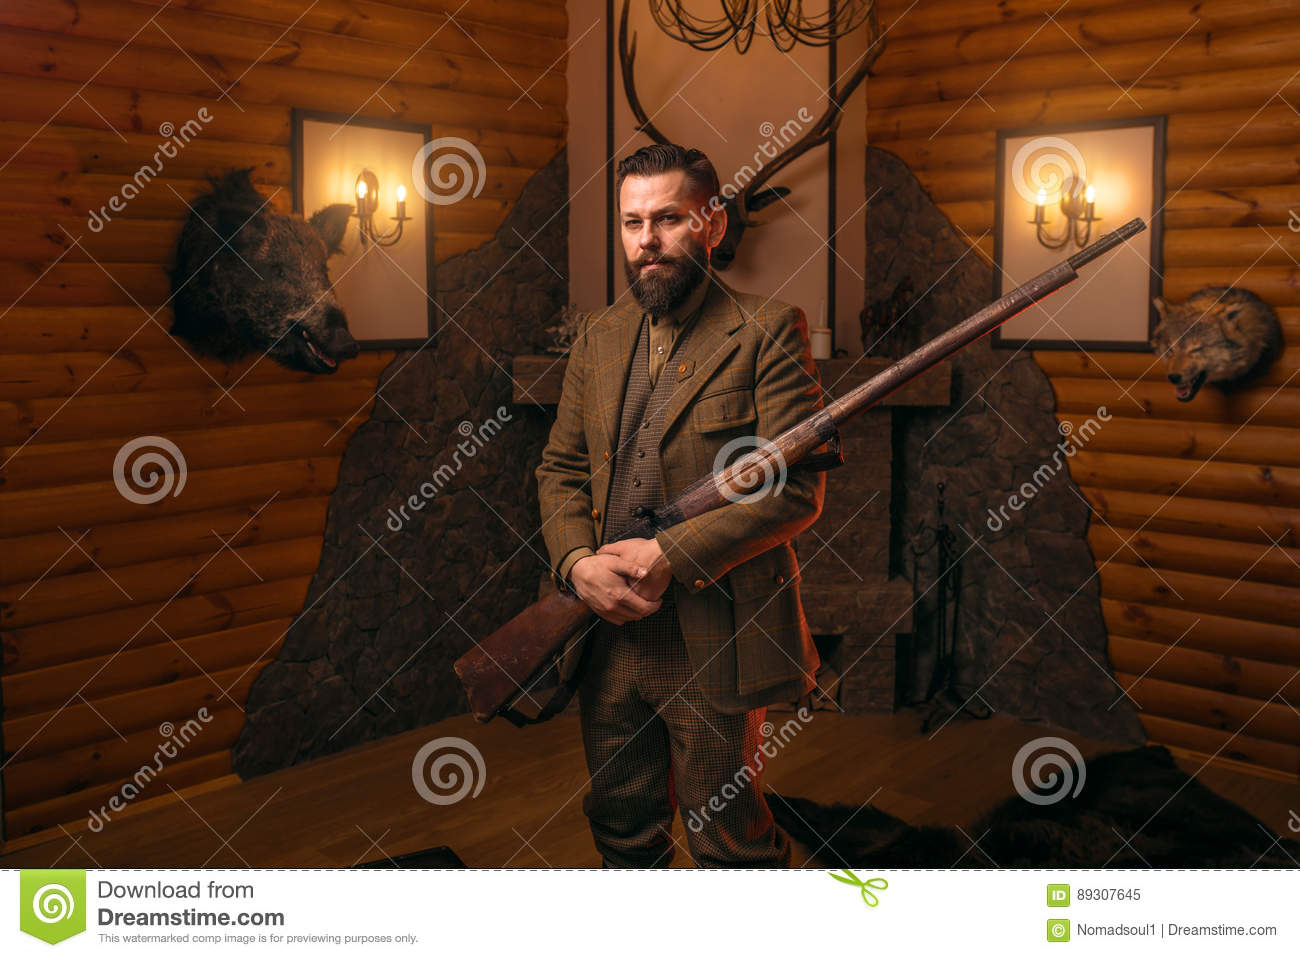 8d21fa83518f4 Hunter gentleman in traditional hunting clothing with old gun against  fireplace. Stuffed wild animals, bear skin and other trophies on background.